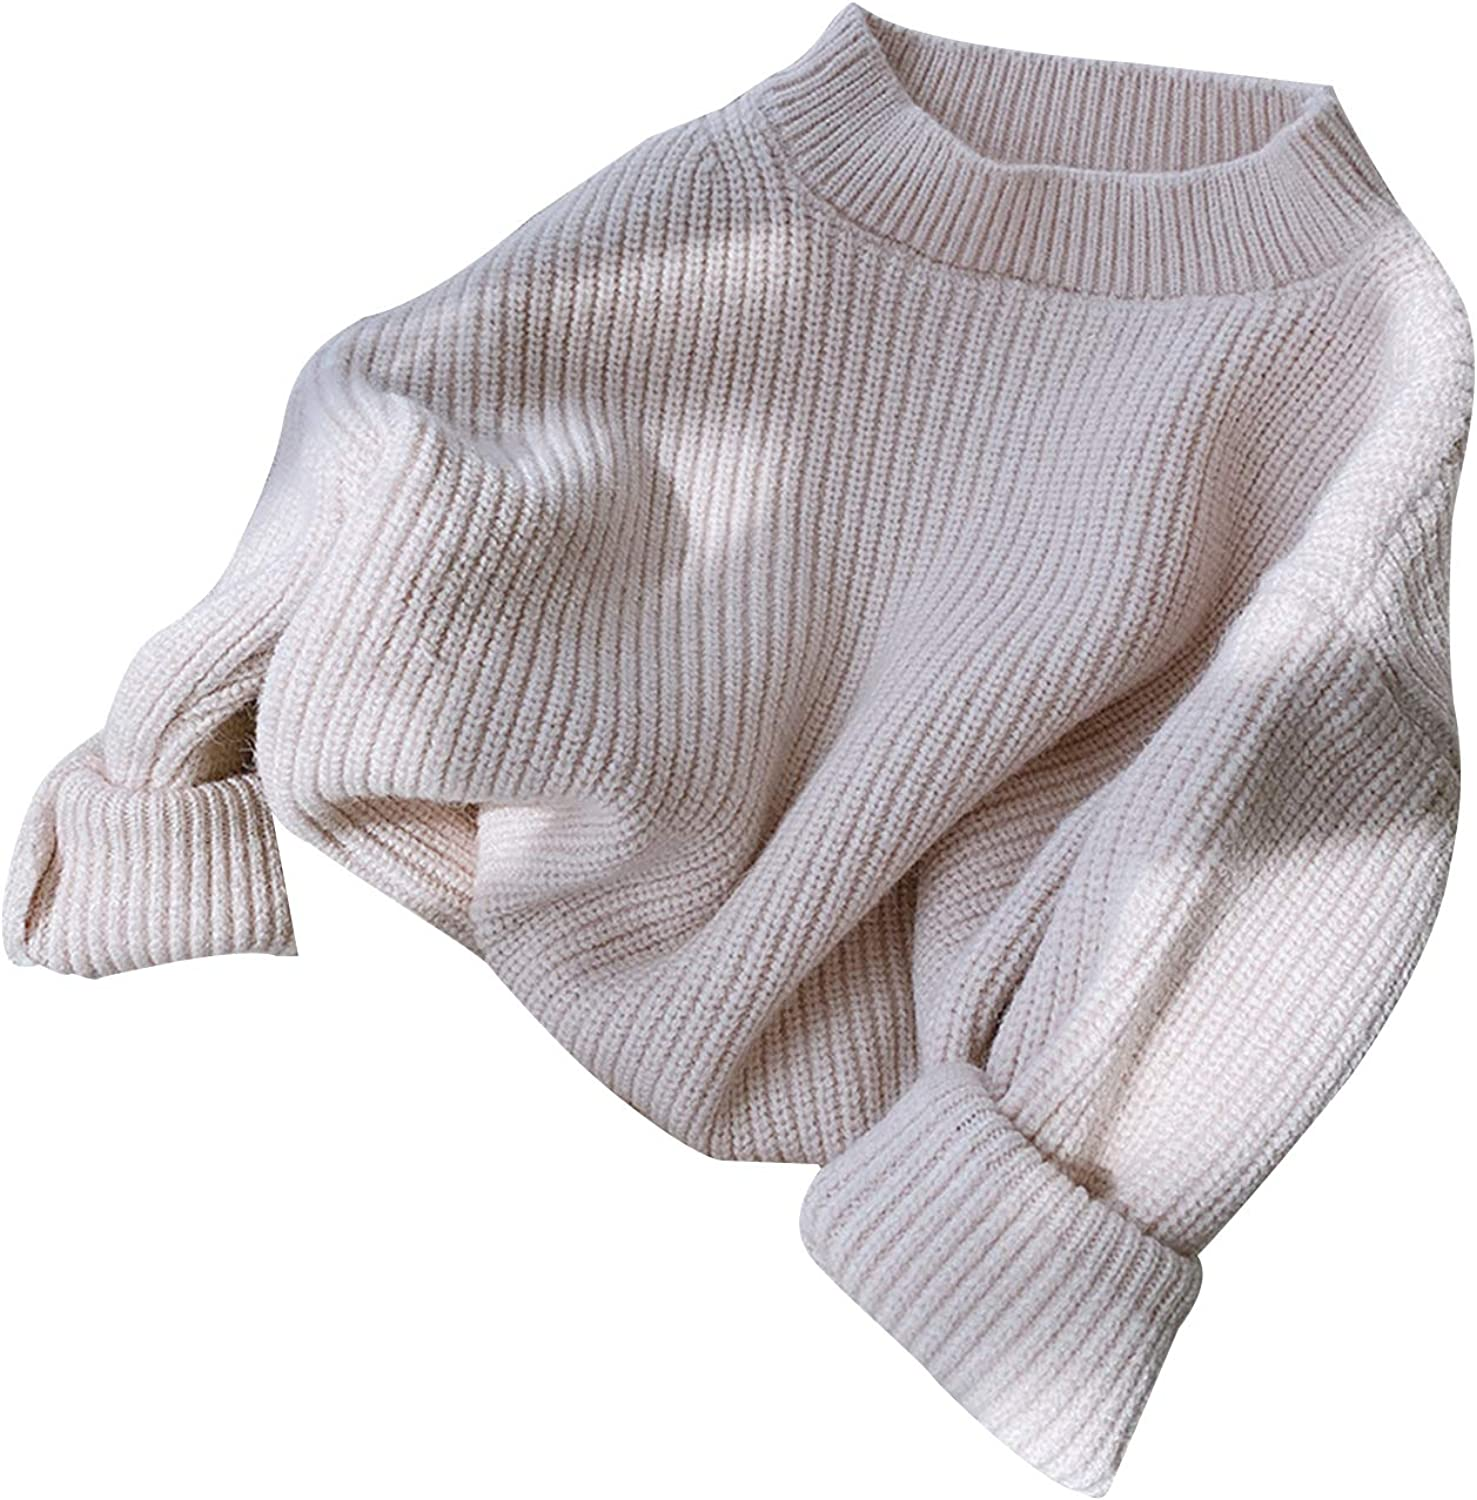 At the price of surprise Toddler Baby Girl Boy Knit Max 62% OFF Sweater Color Long Sleeve Solid Loose